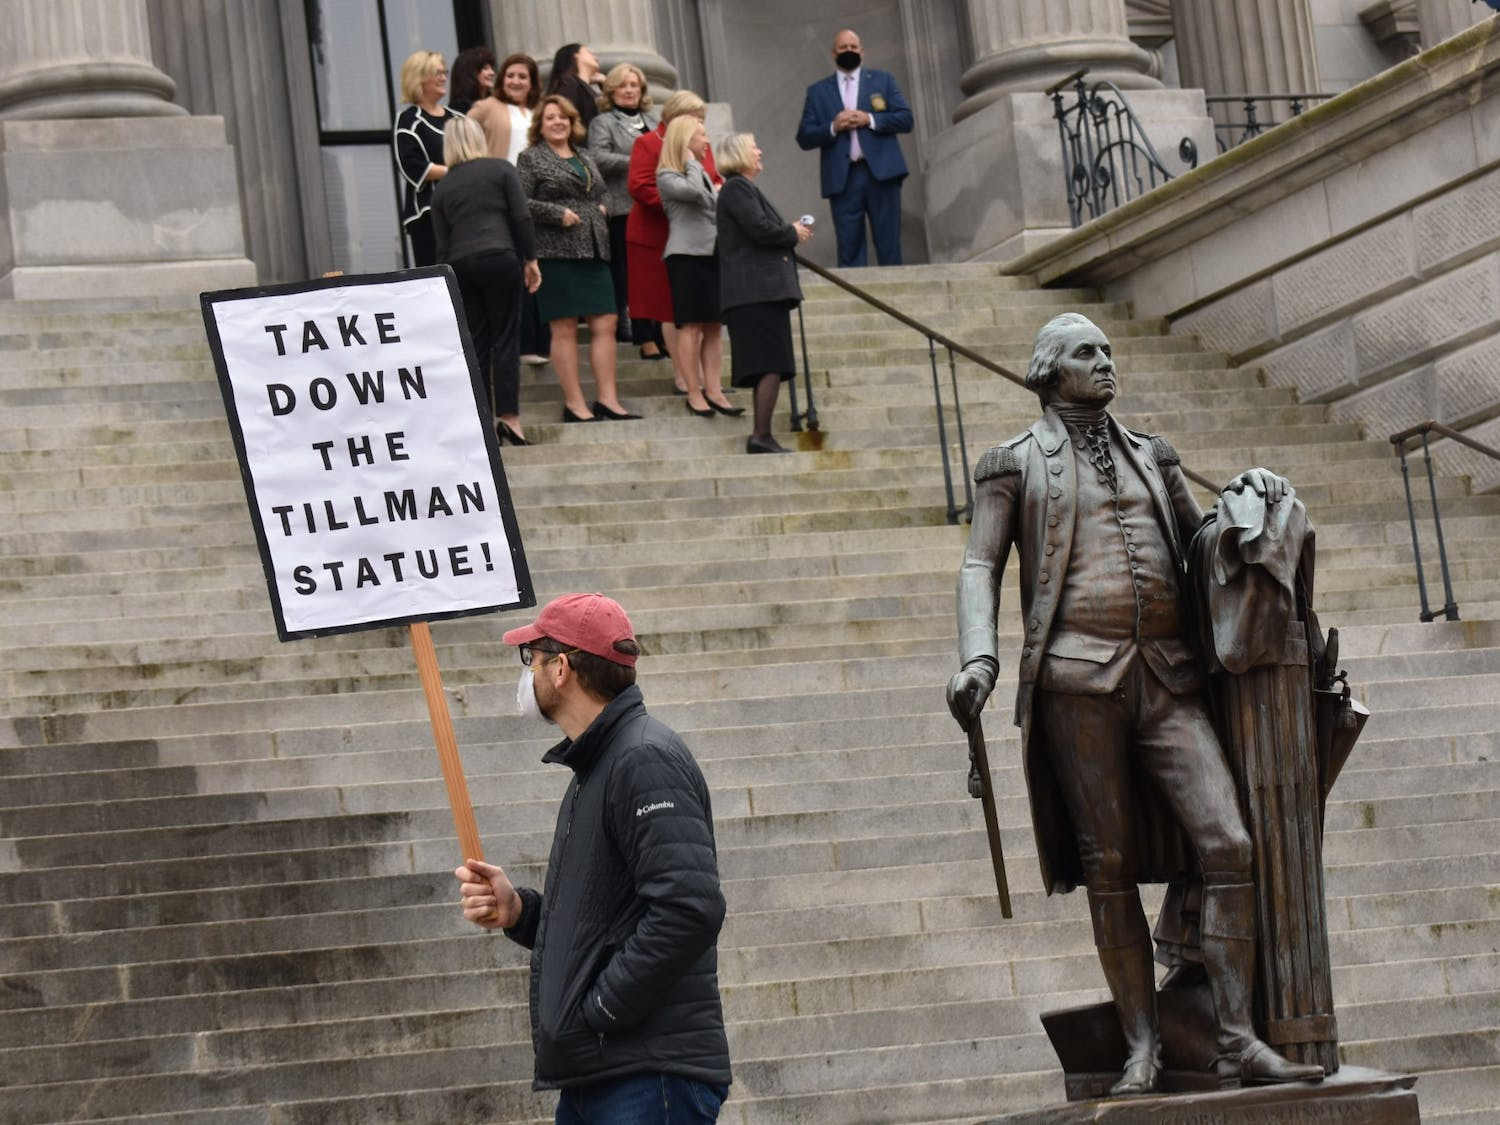 """A protestor holding a """"Take Down the Tillman Statue"""" sign walks in front of the South Carolina Statehouse while Statehouse workers observe."""